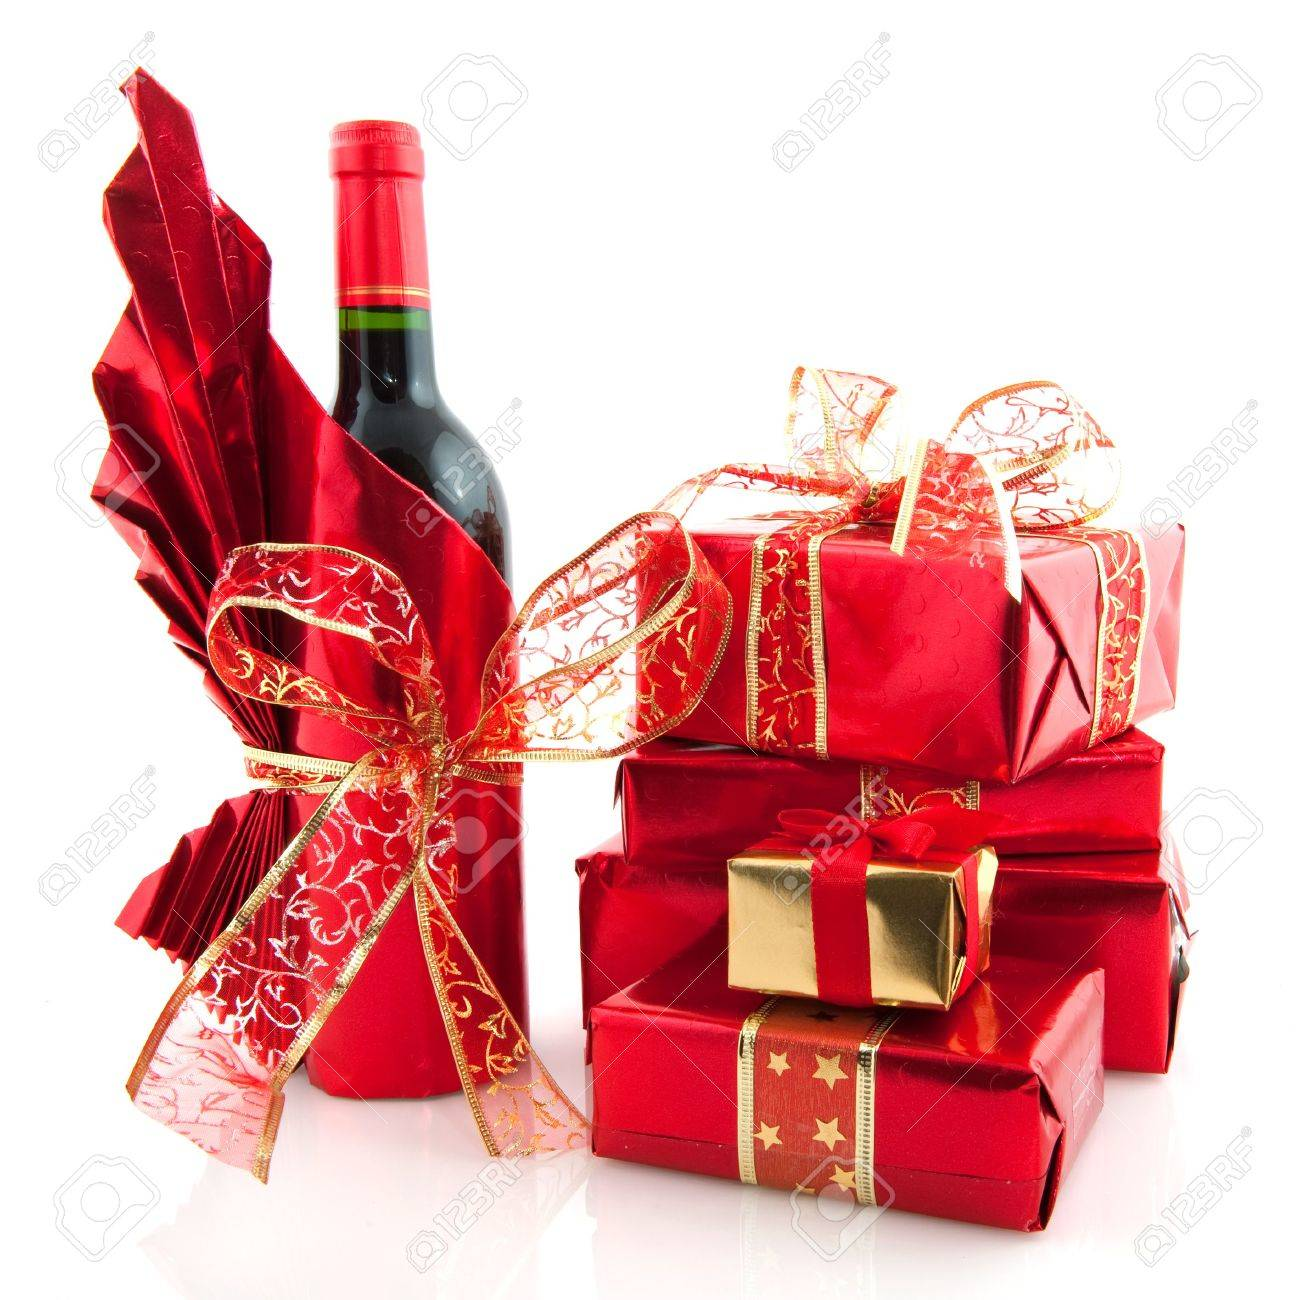 Wine Gifts For Christmas Part - 45: Wine Gifts: Luxury Christmas Presents And Wine Wrapped In Red